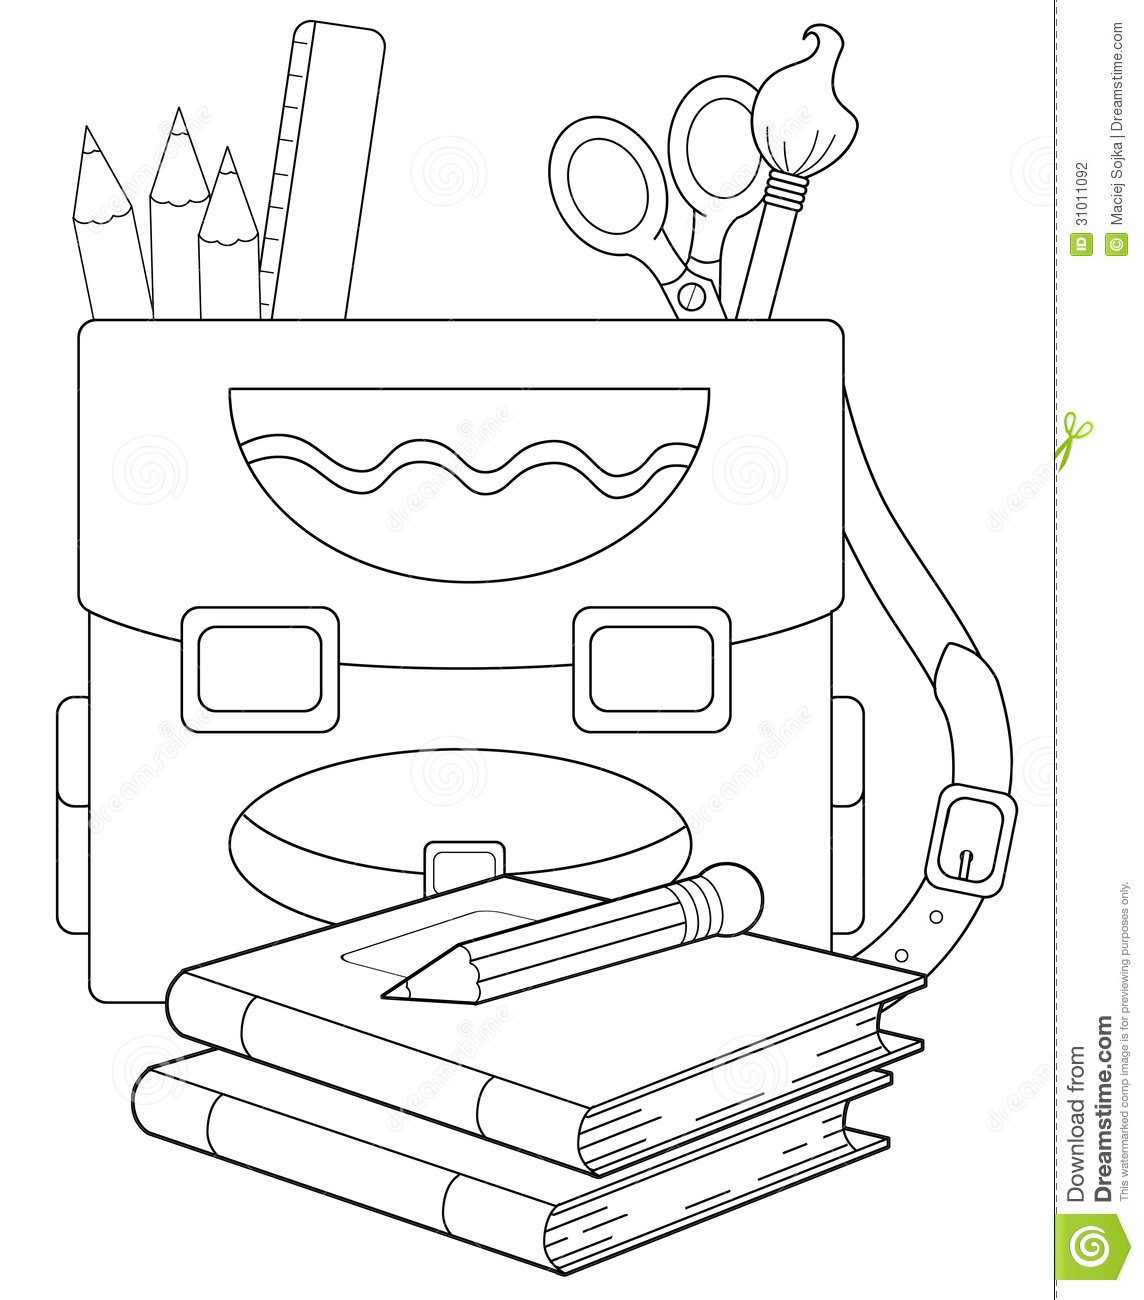 exercise print out coloring pages - photo #39